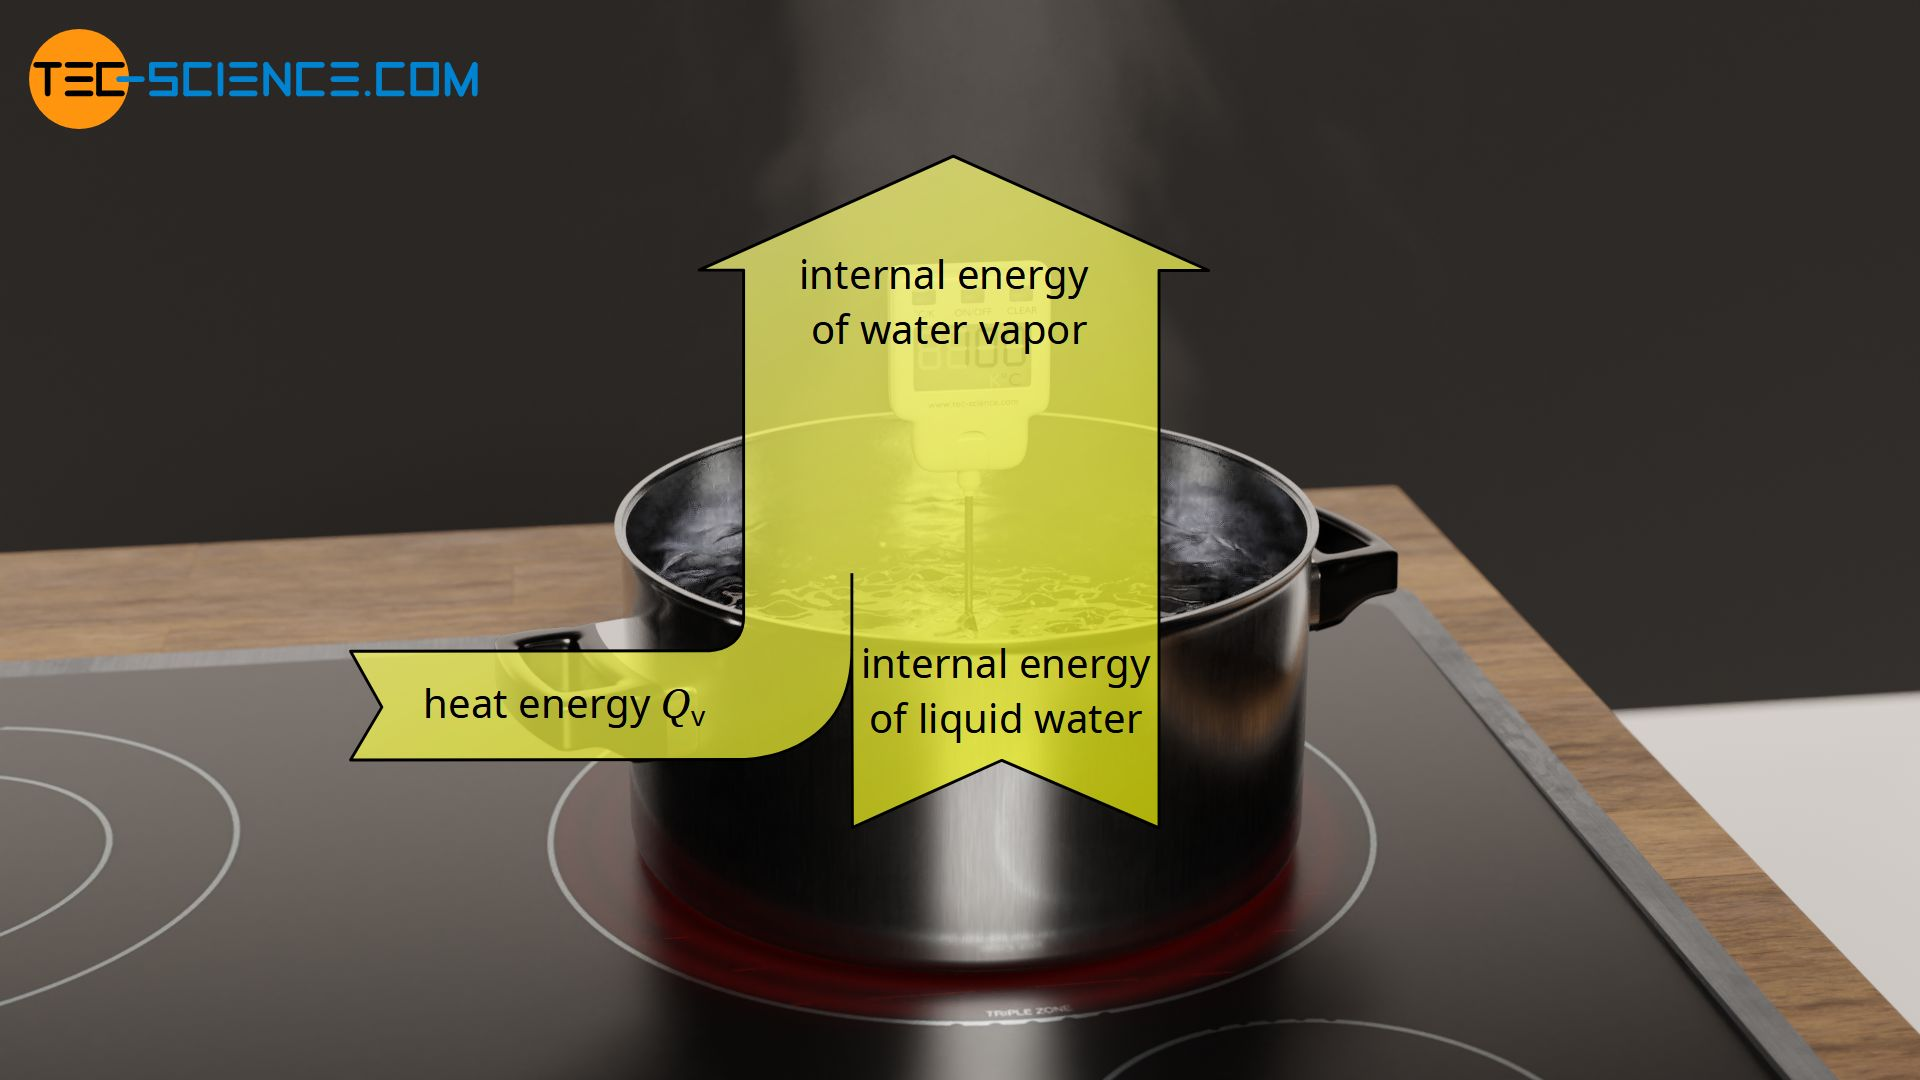 Change in internal energy due to input of heat of vaporization